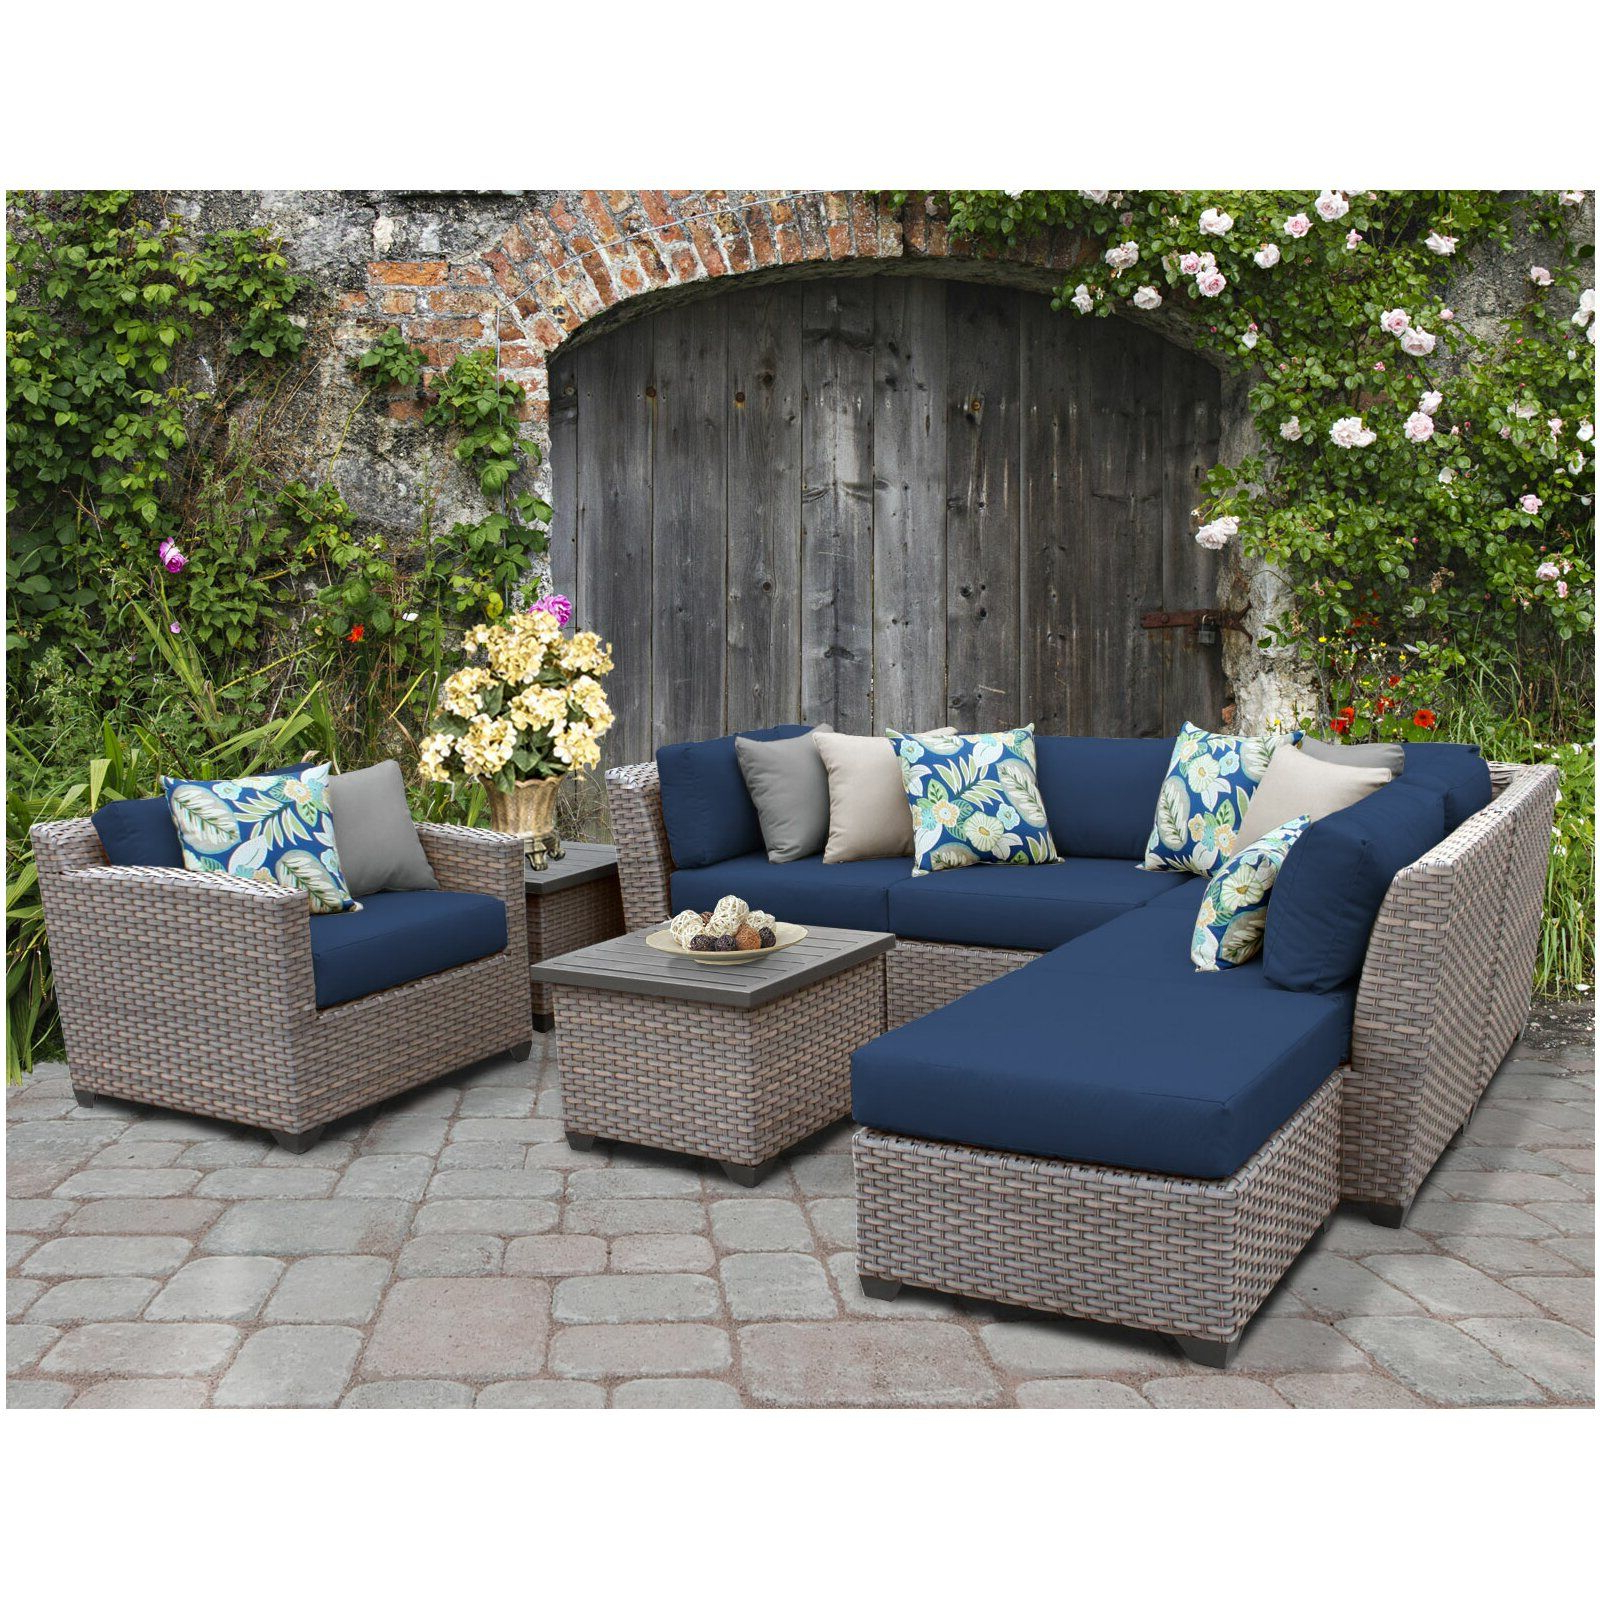 Recent Meeks 8 Piece Sectional Seating Group With Cushions In 2019 With Meeks Patio Sofas With Cushions (View 4 of 20)